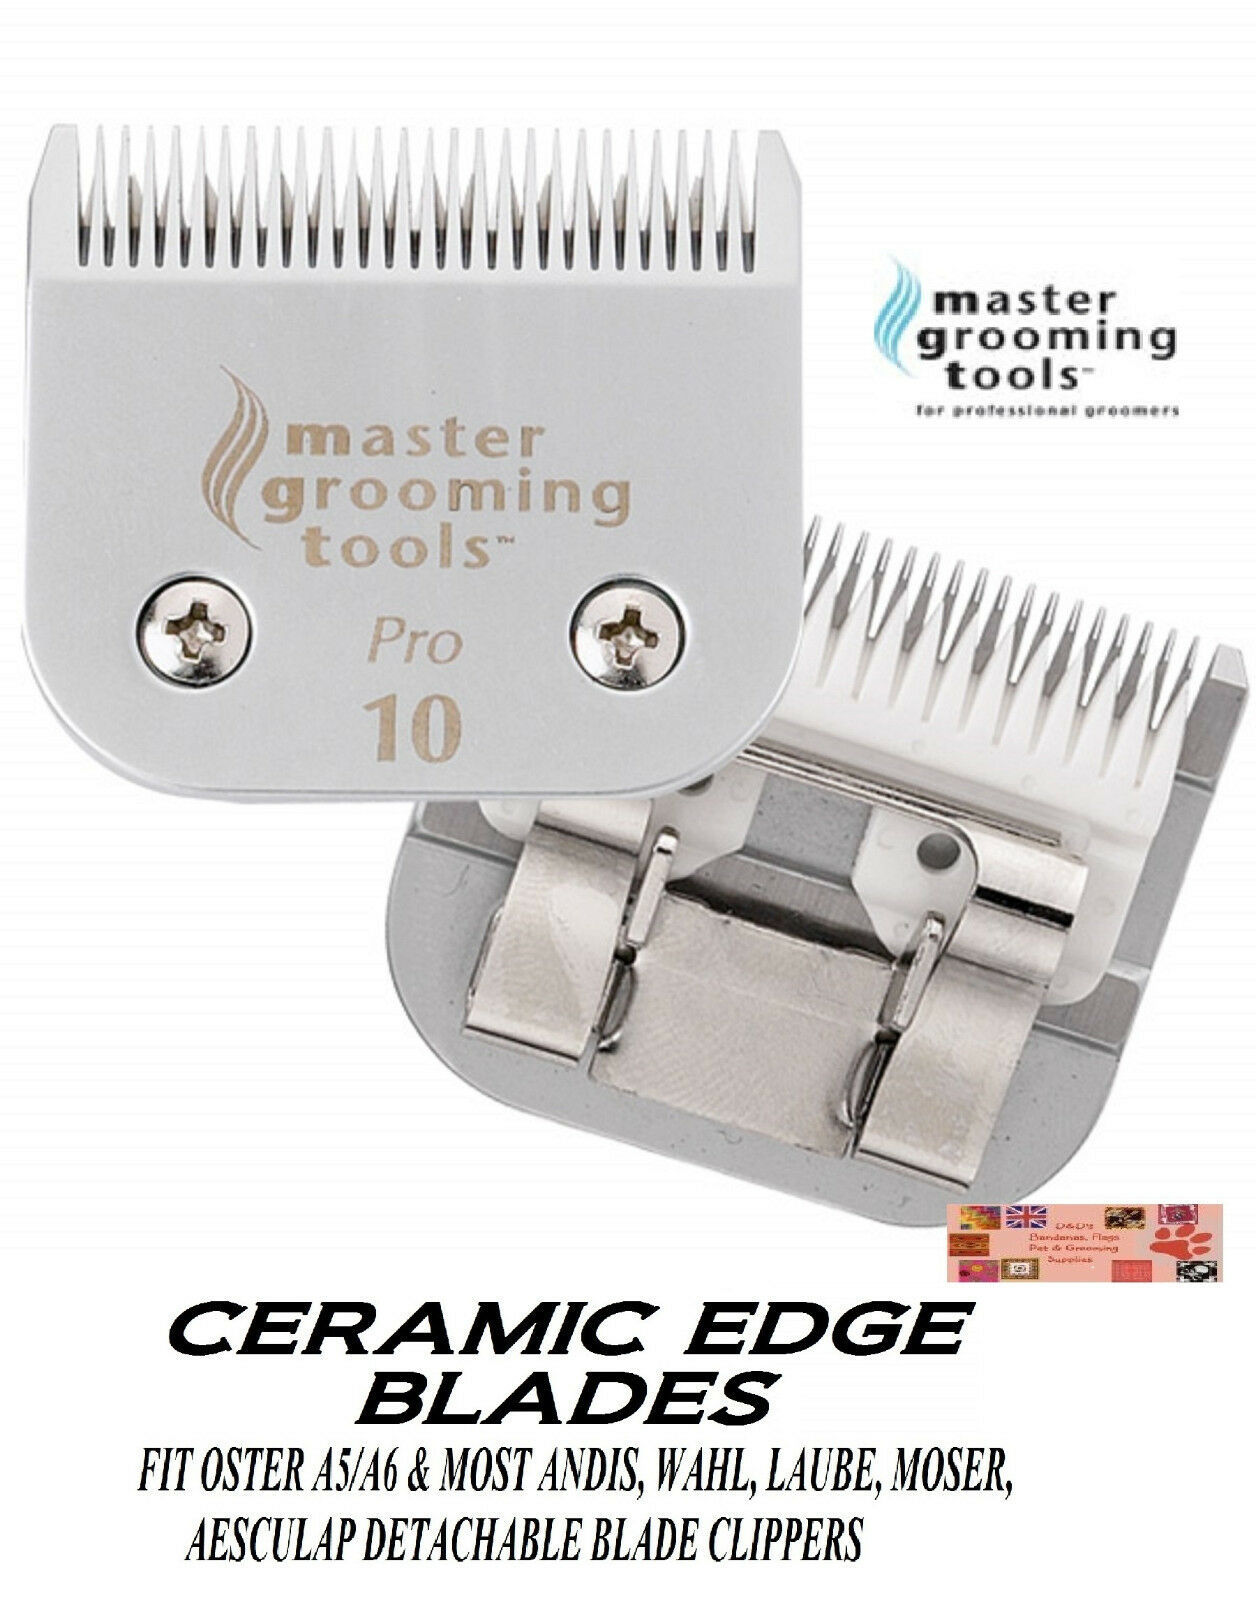 PRO CERAMIC Edge Pet Grooming 10 Blade Fit Oster A5/A6 MOST Andis,Wahl Clipper - $31.91